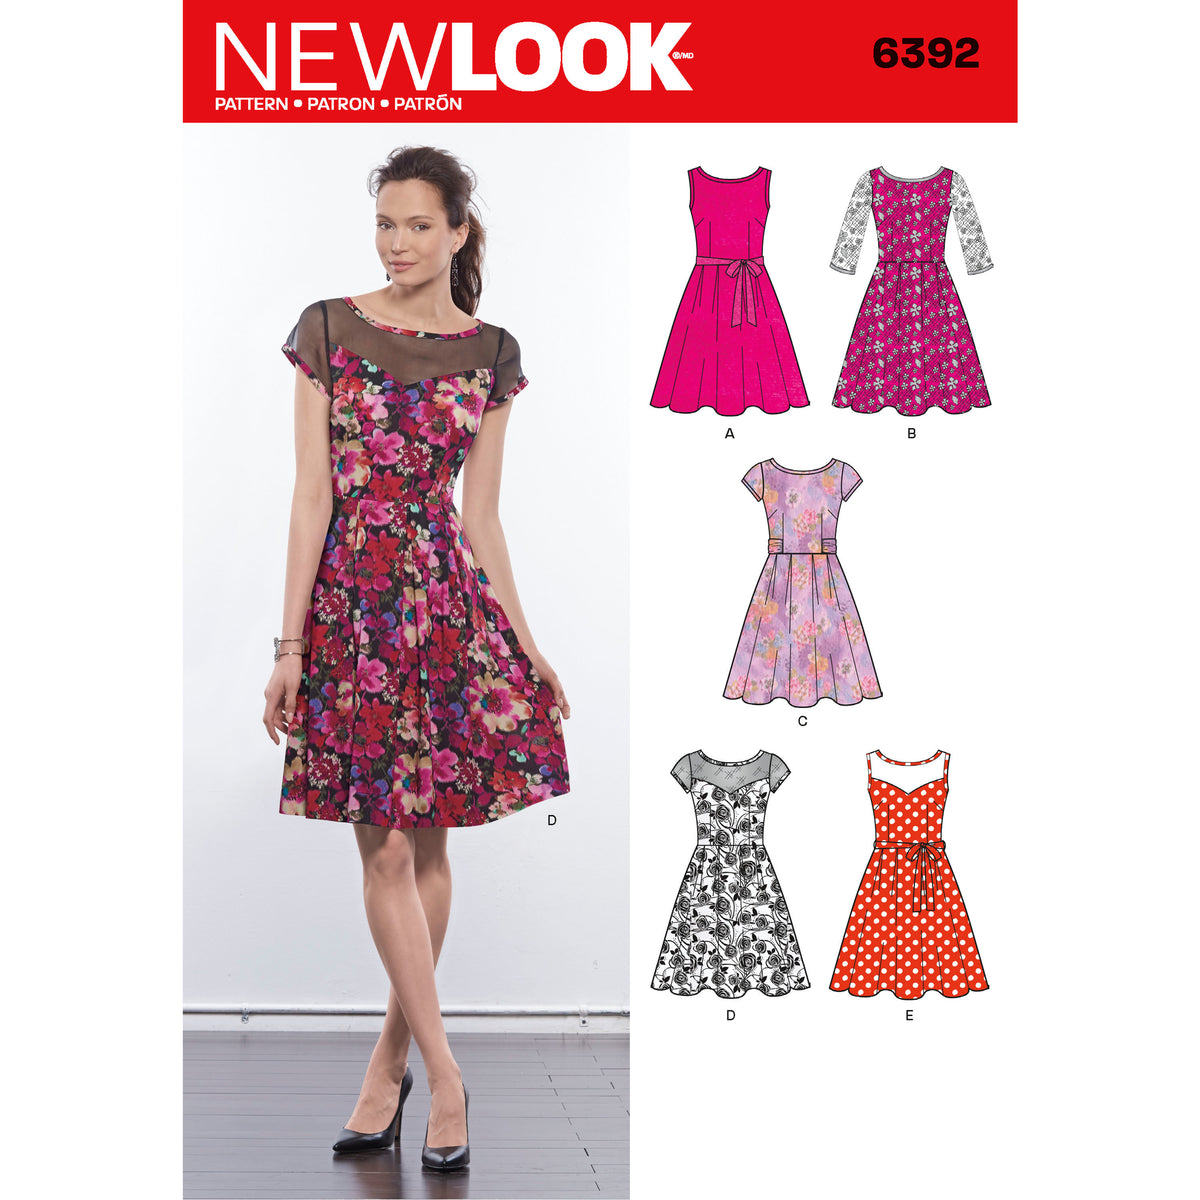 6392 Misses' Dresses with Contrast Fabric Options